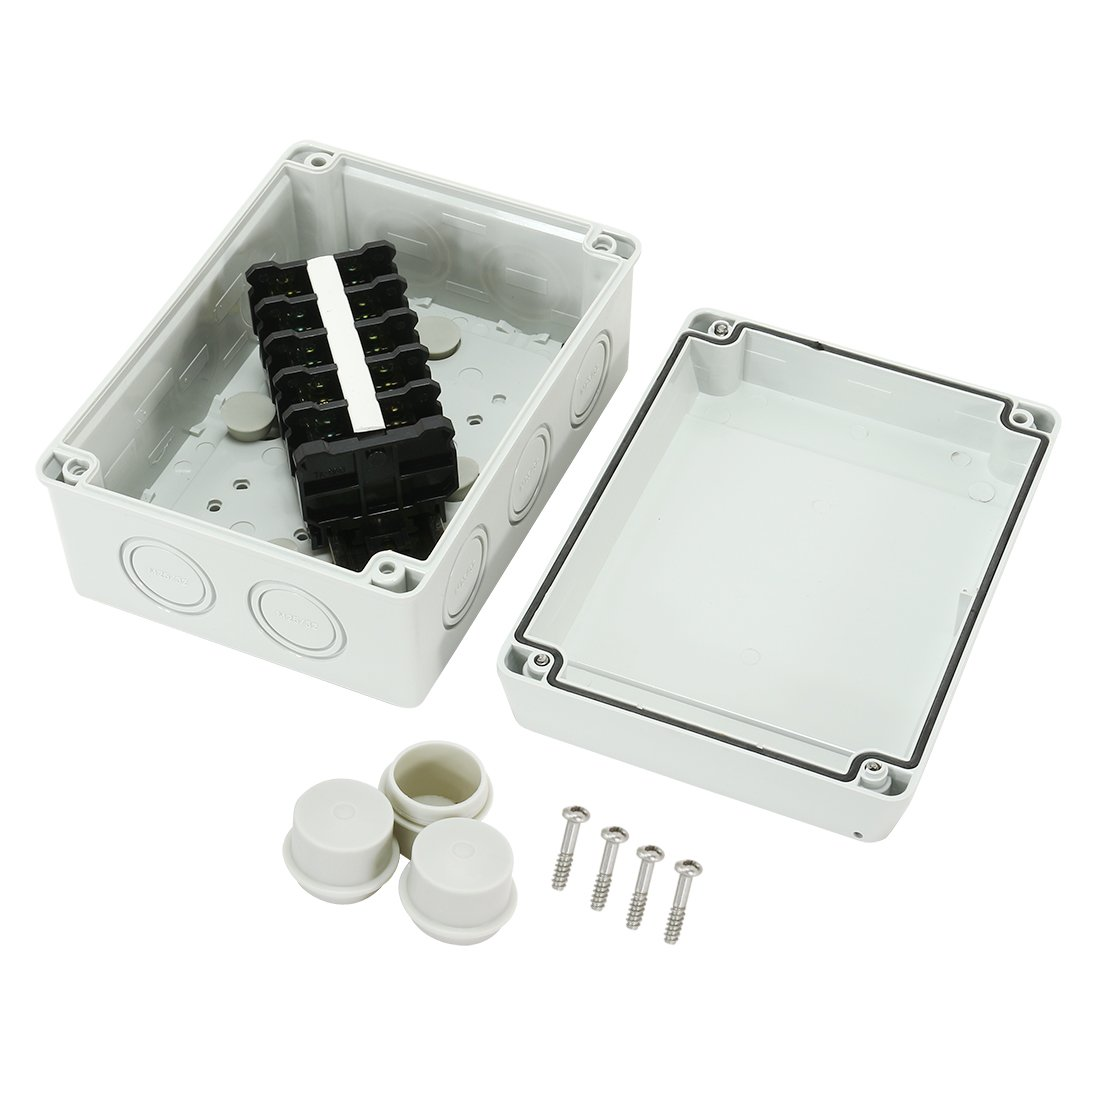 uxcell 6.6''x4.9''x3.2'' (167mmx125mmx82mm) ABS Flame Retardant IP65 Junction Box Universal Project Enclosure